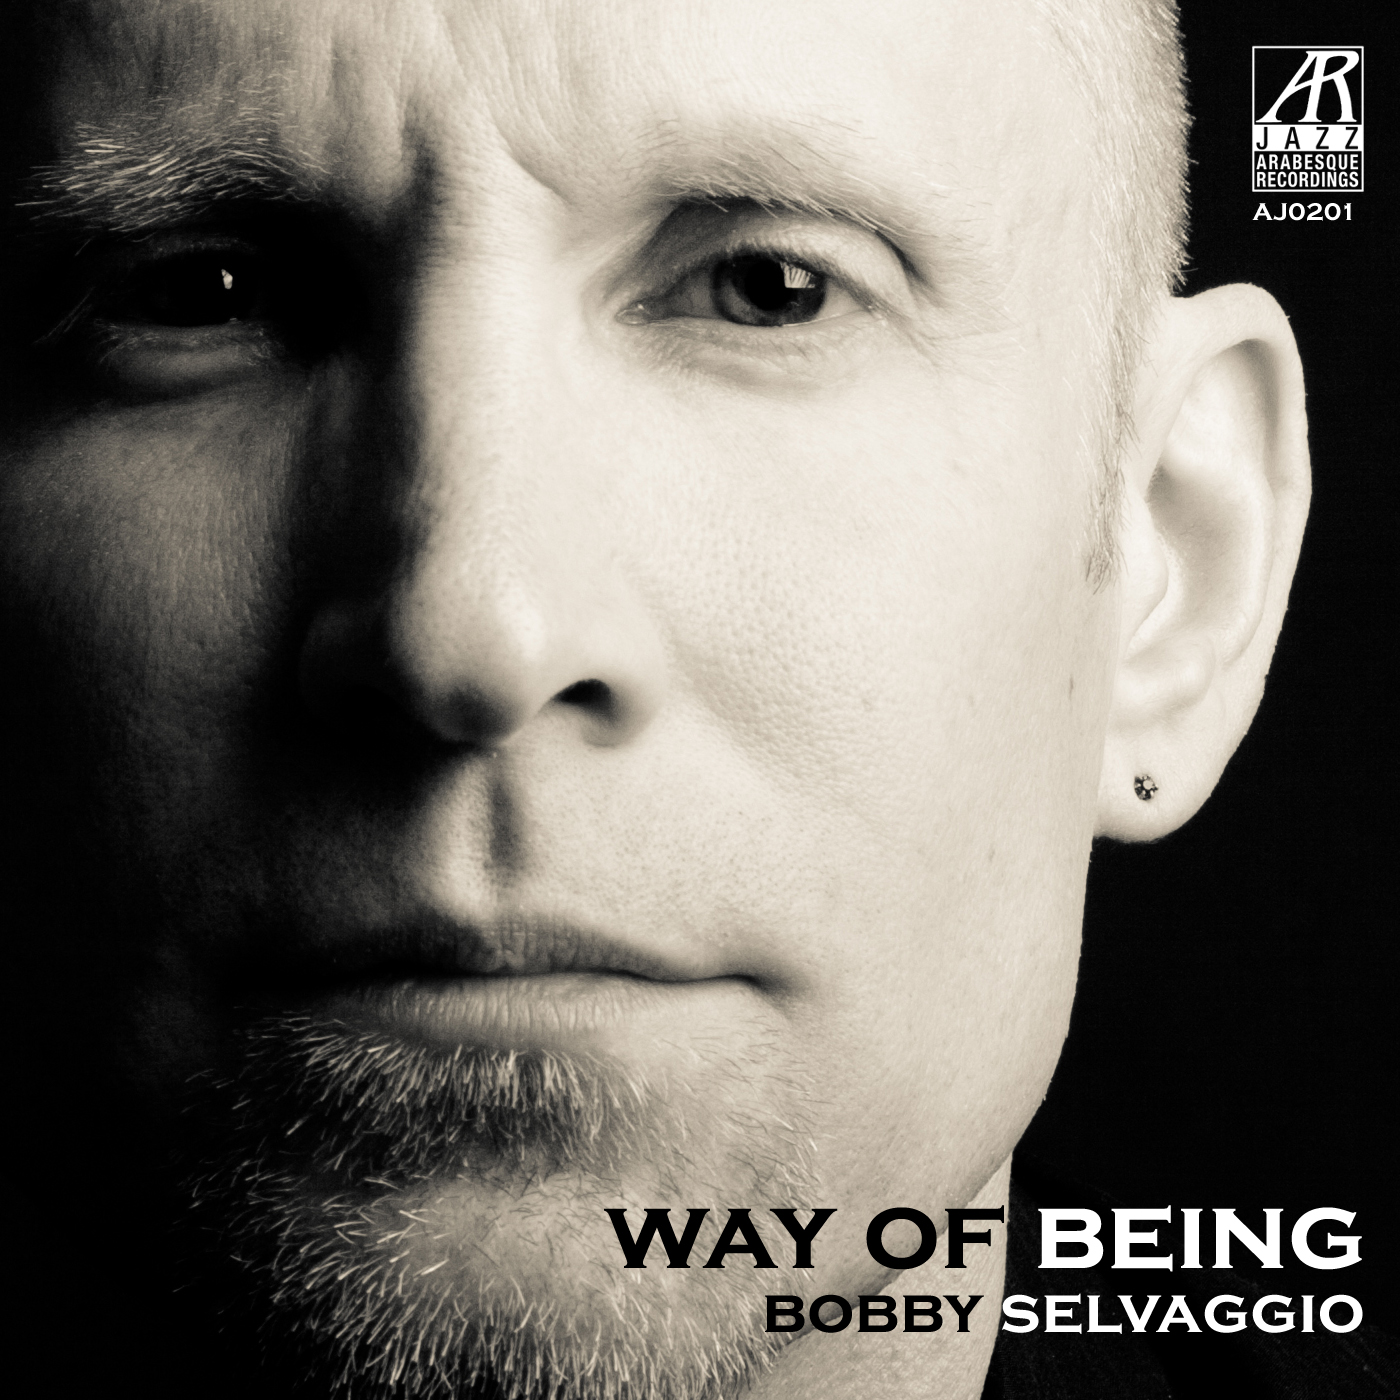 AJ0201  | Way of Being |  Bobby Selvaggio